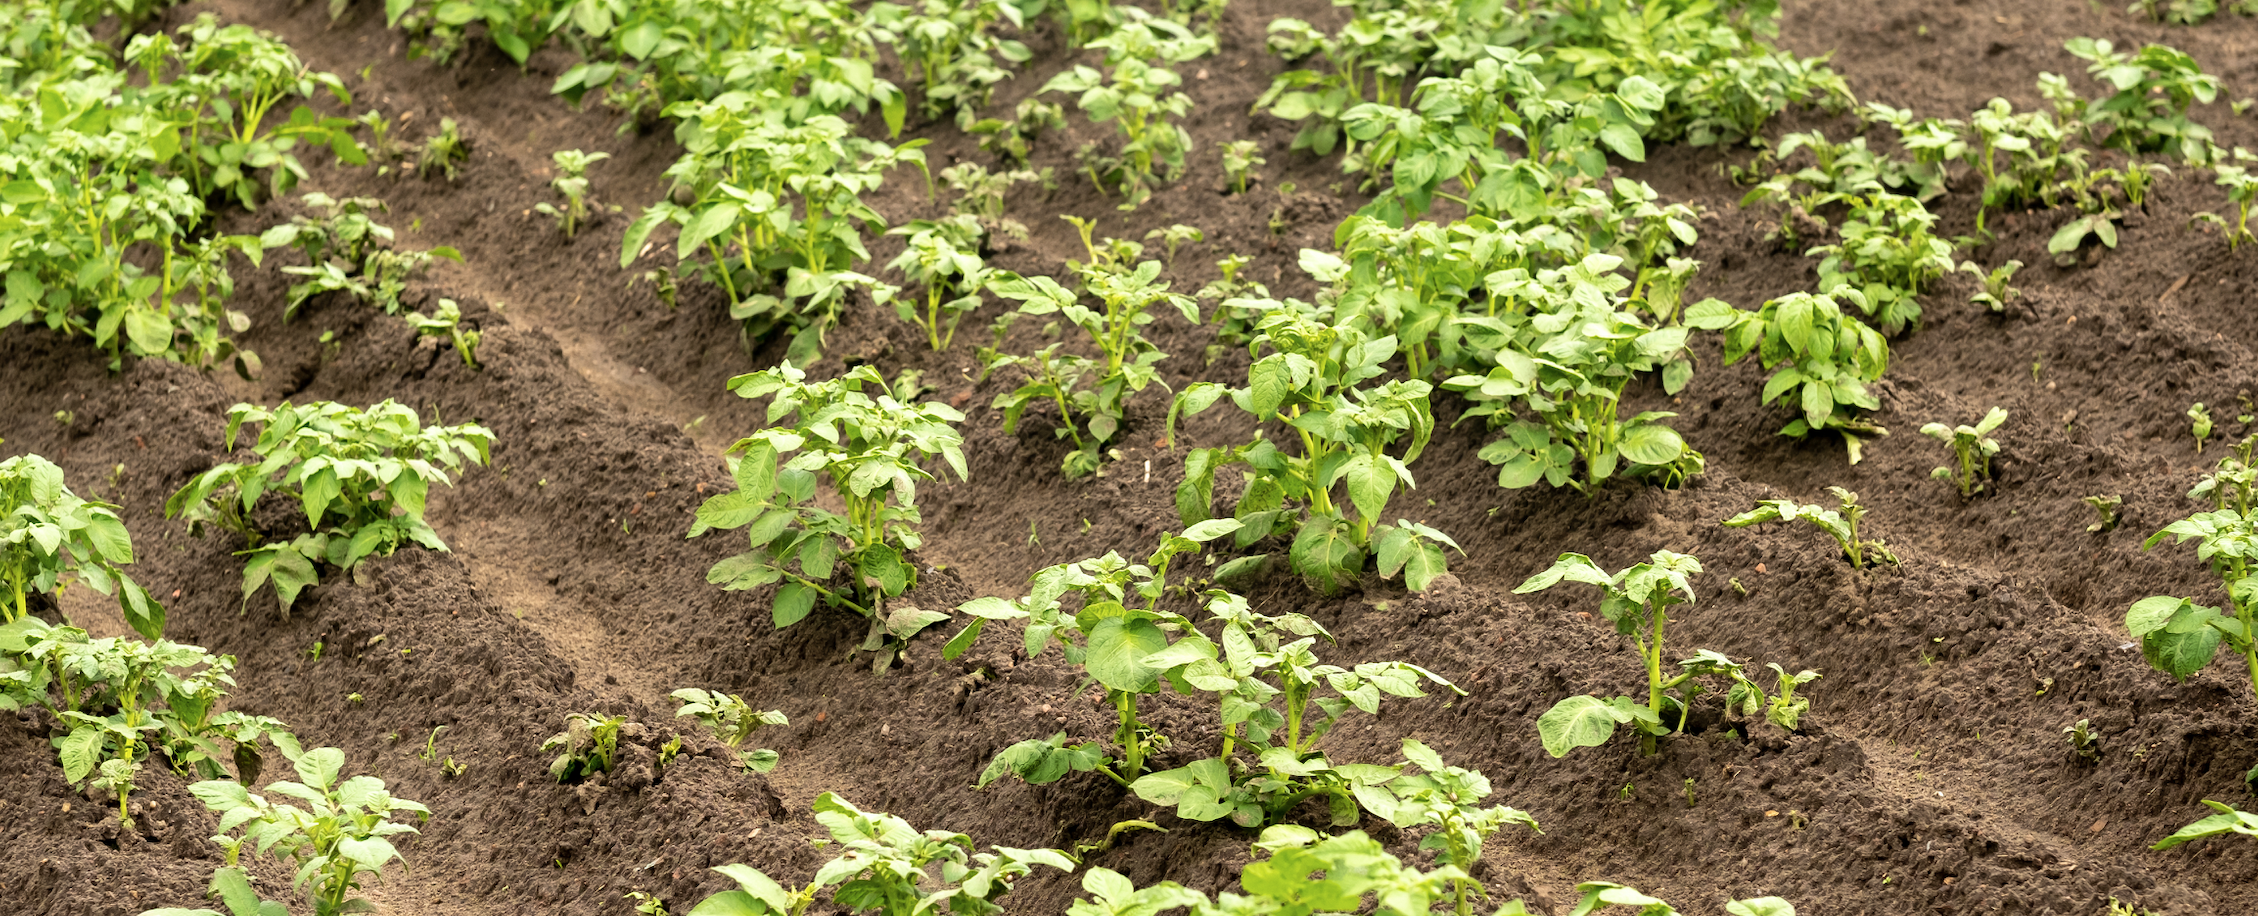 Wondering how to grow potatoes from a potato? Its easier & more rewarding than buying from a store! Grow organic healthy potatoes for pennies!